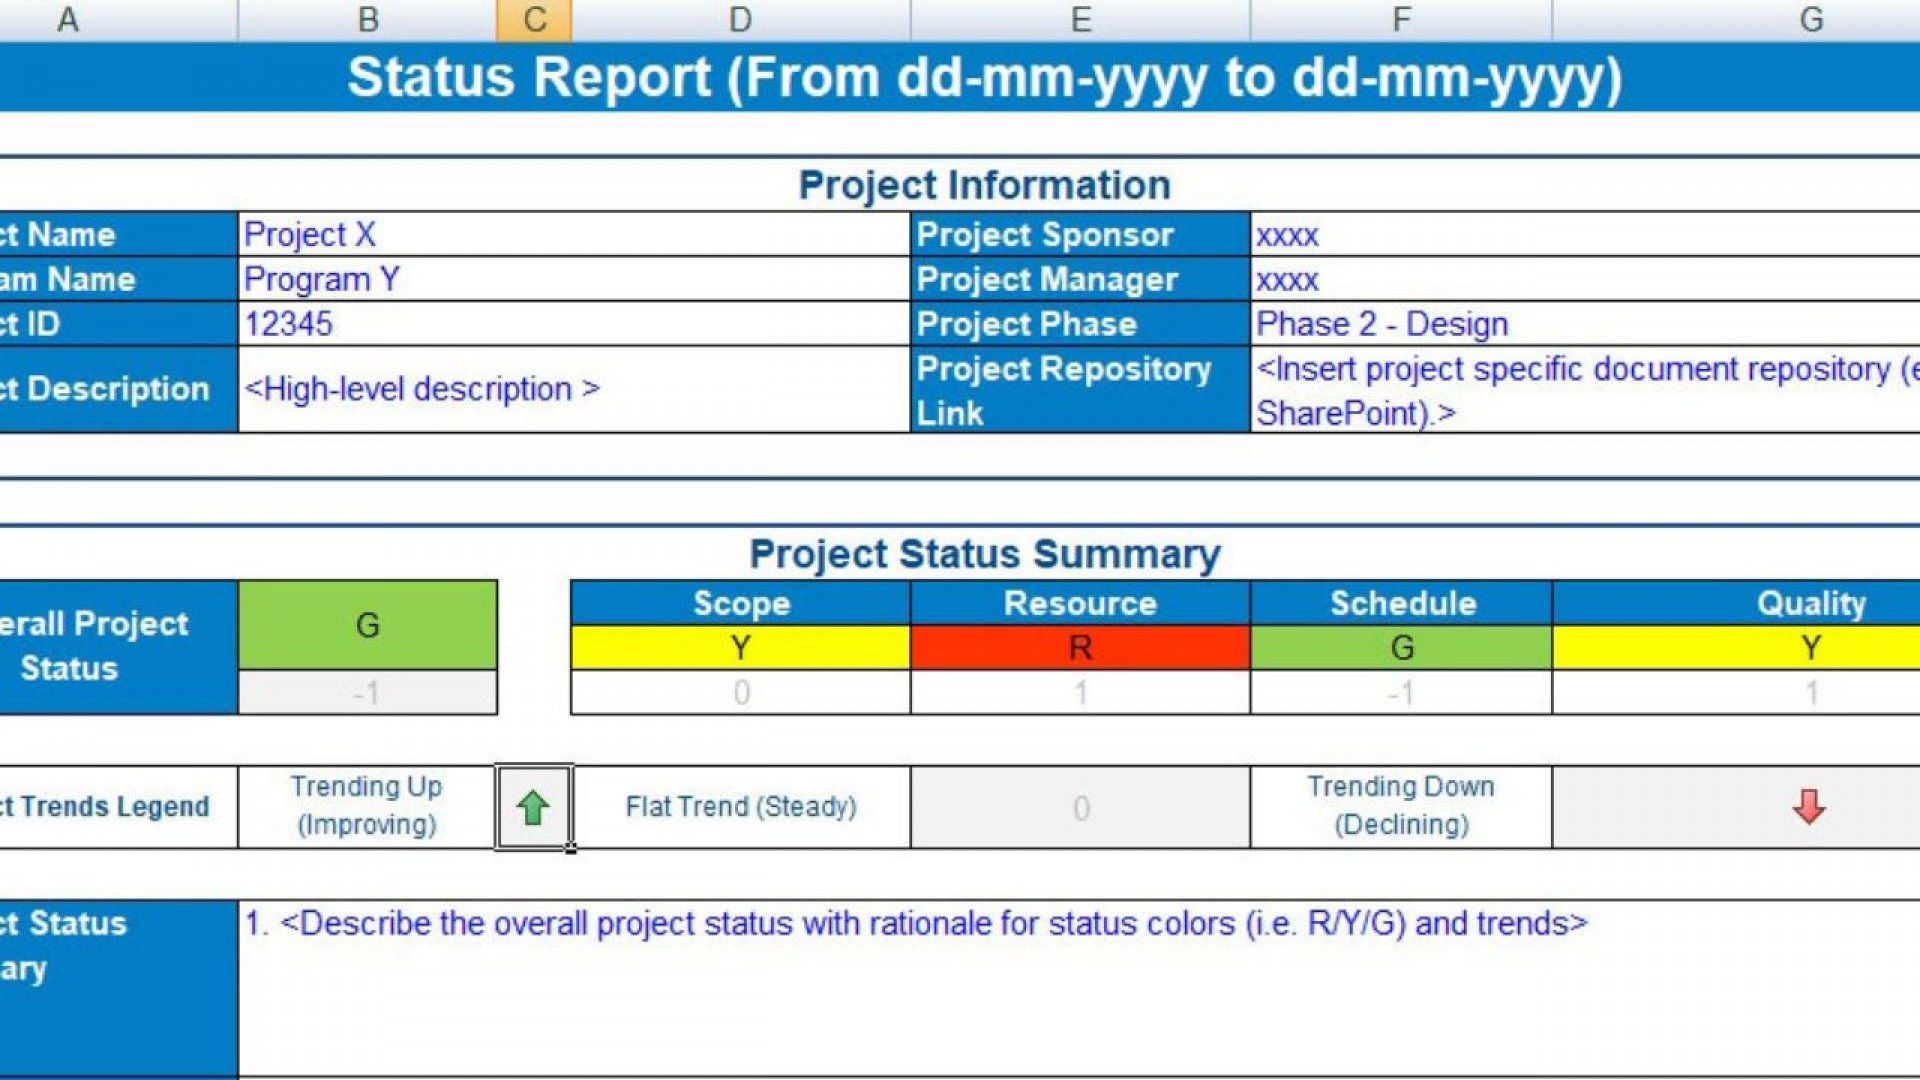 009 Exceptional Project Management Weekly Statu Report Template Ppt Picture  Template+powerpointFull